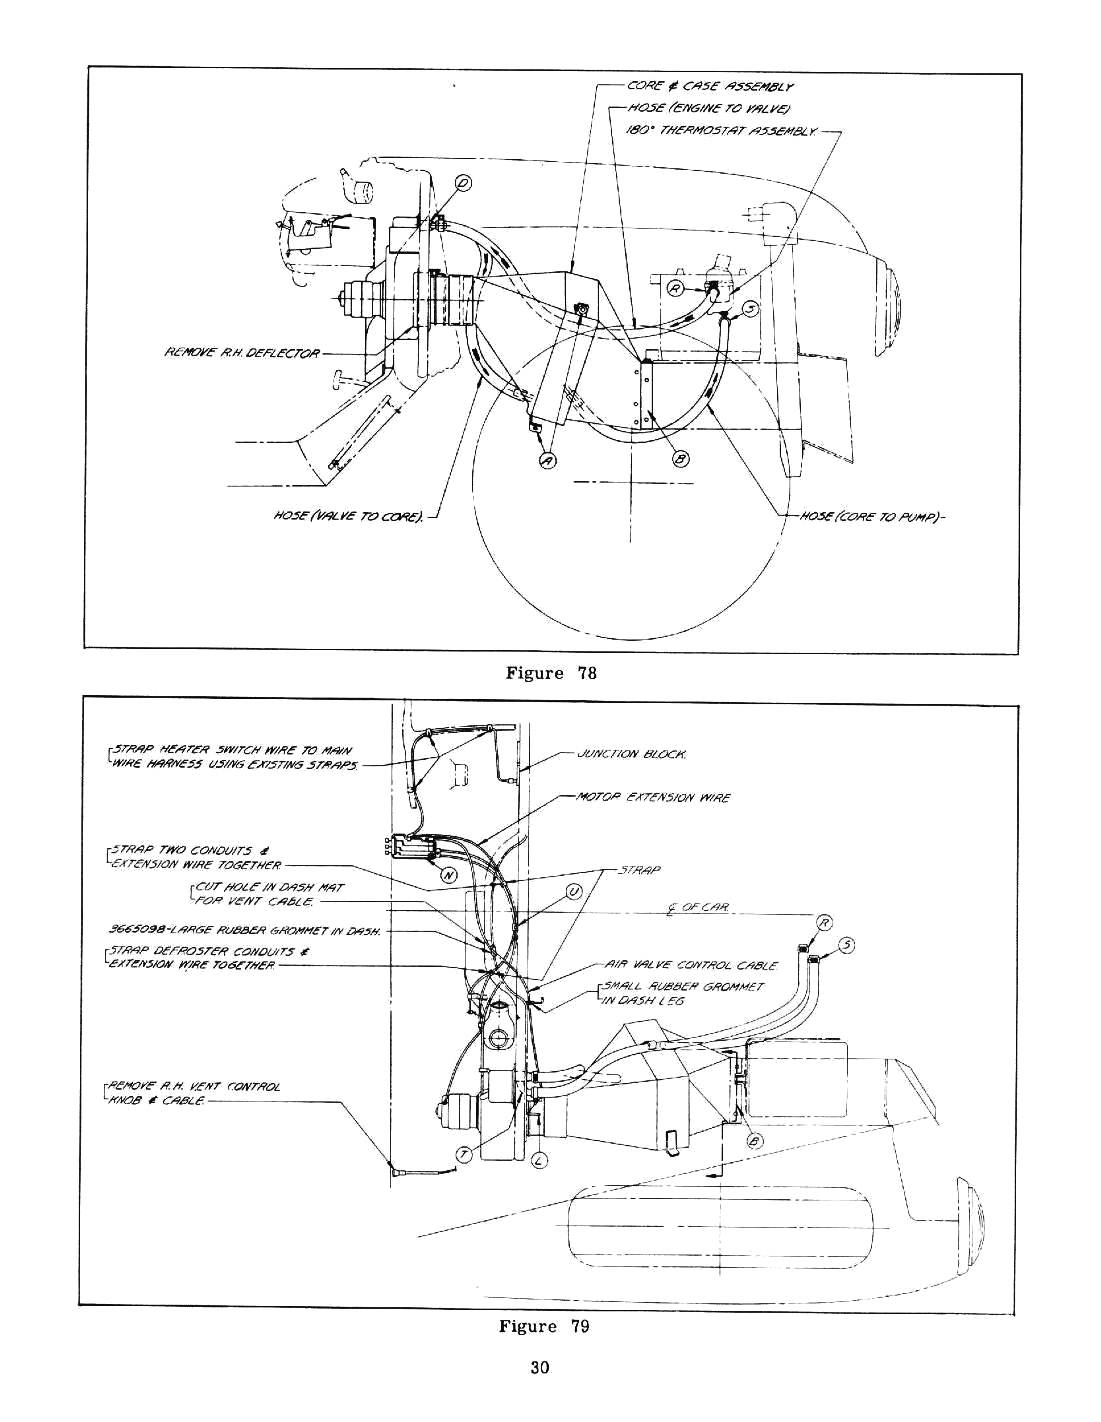 1953 chevrolet heater hose routing